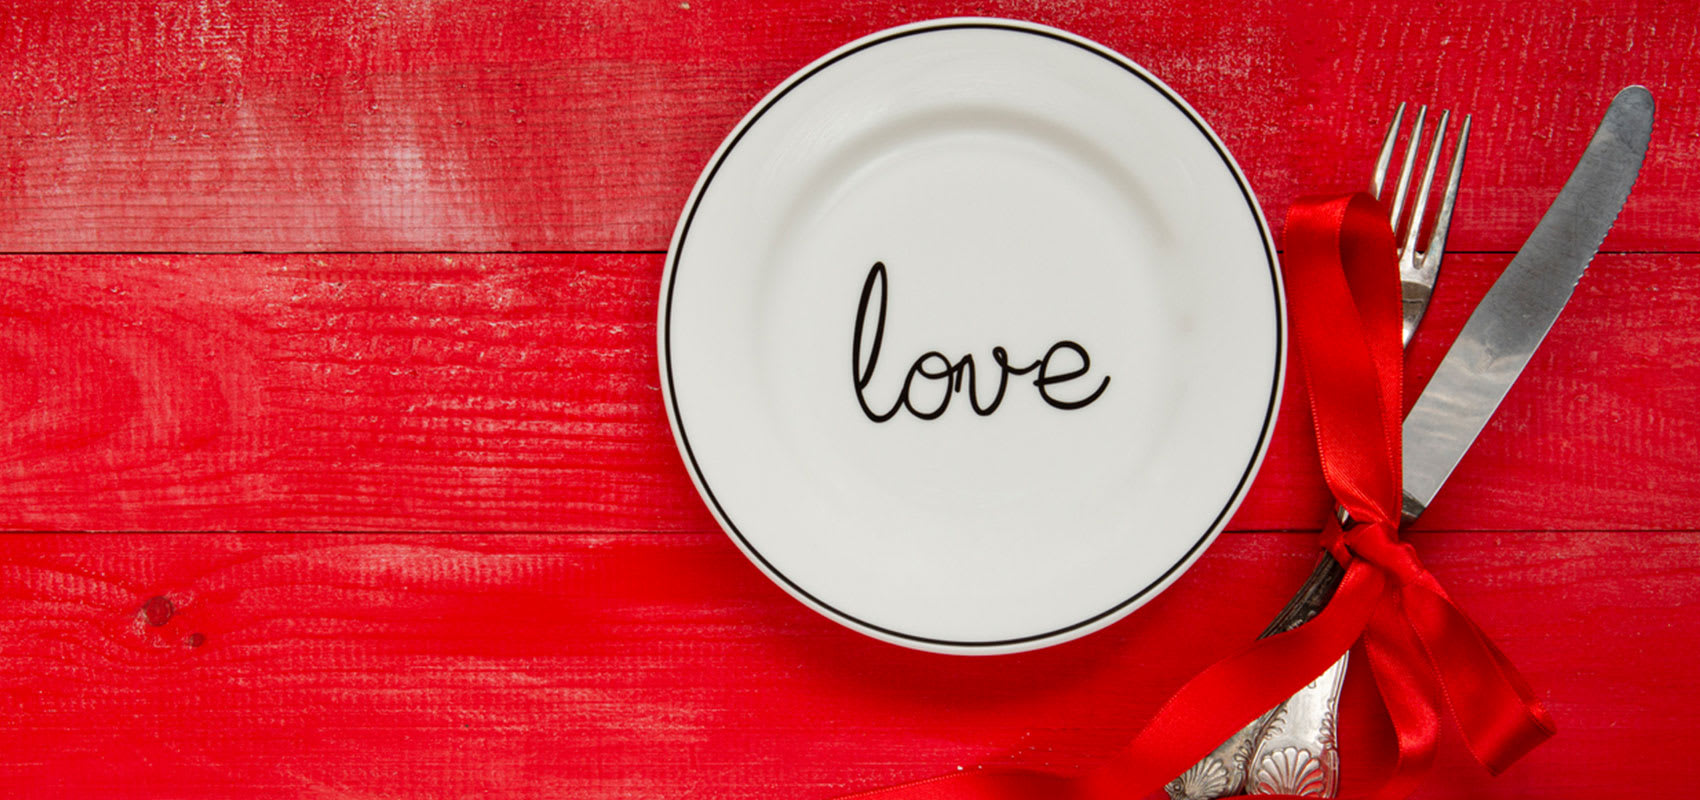 FALL IN LOVE WITH PARK CITY RESTAURANTS  VALENTINE'S DAY DINE-IN AND TAKE-OUT OFFERINGS Image